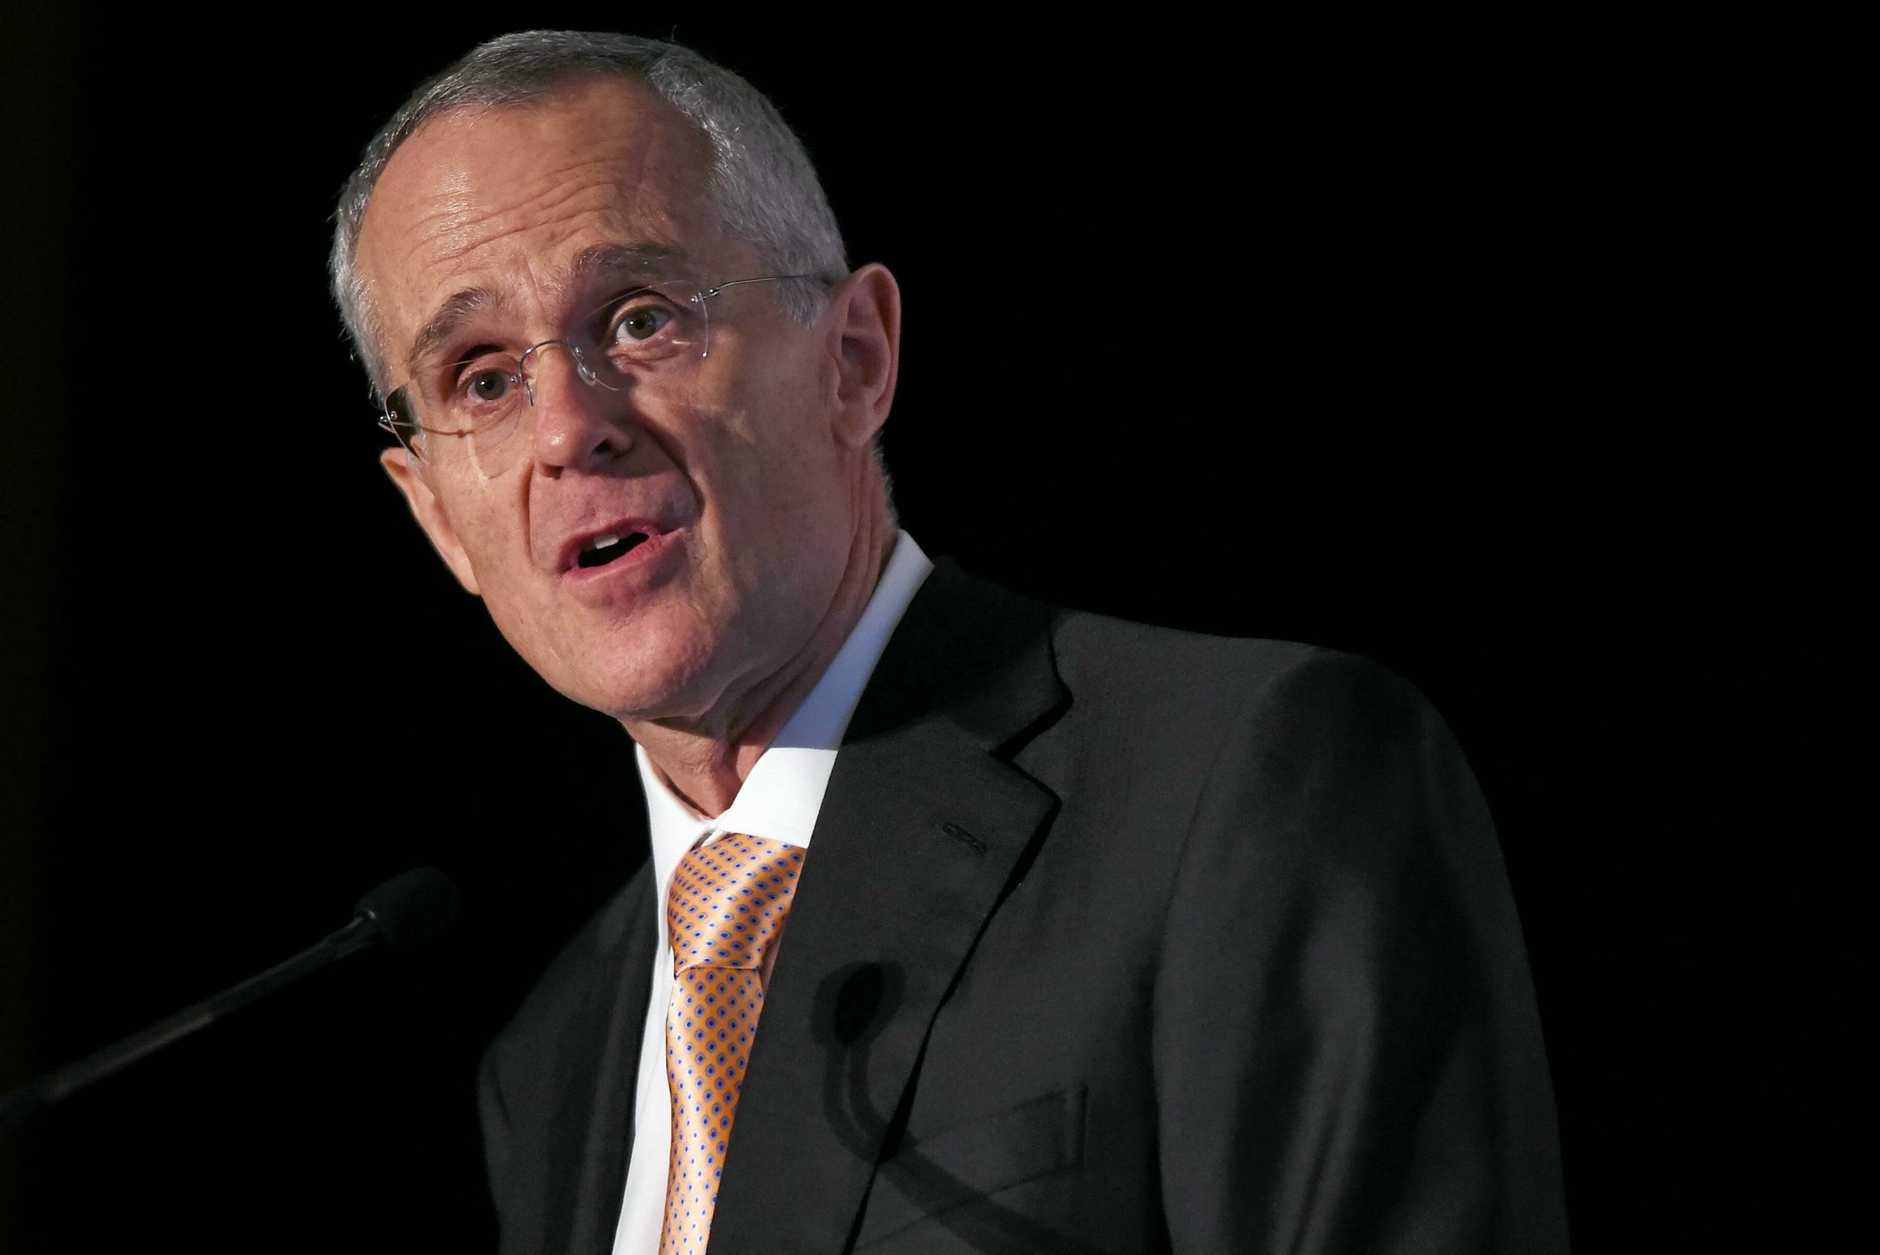 Chairman of the Australian Competition and Consumer Commission, Rod Sims.